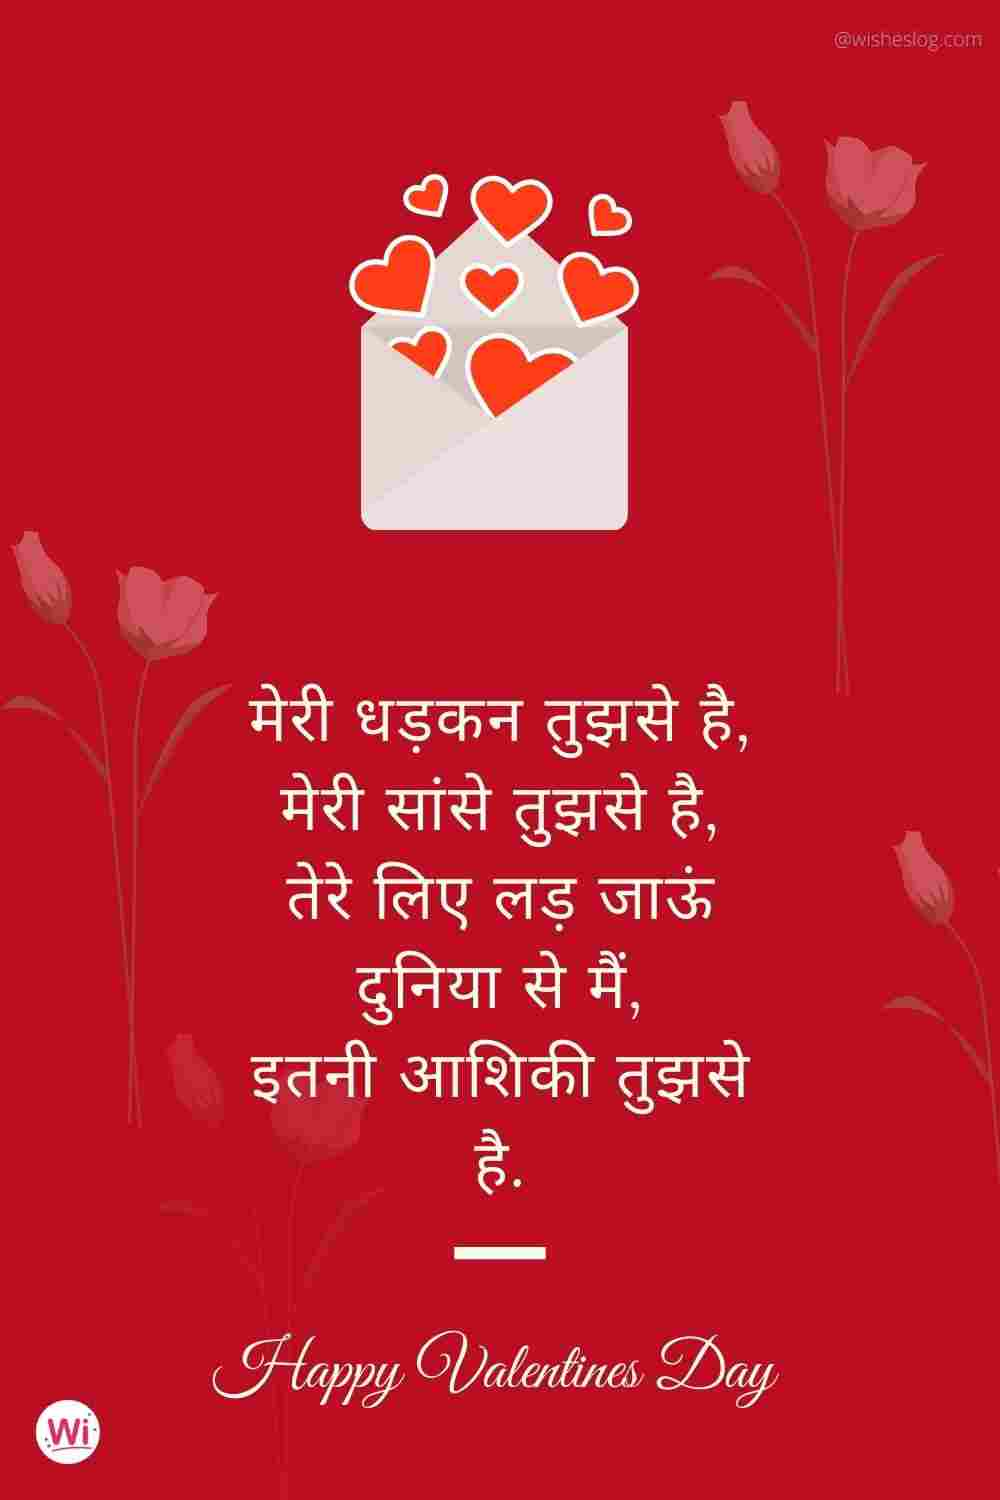 valentines day quotes for wife in hindi